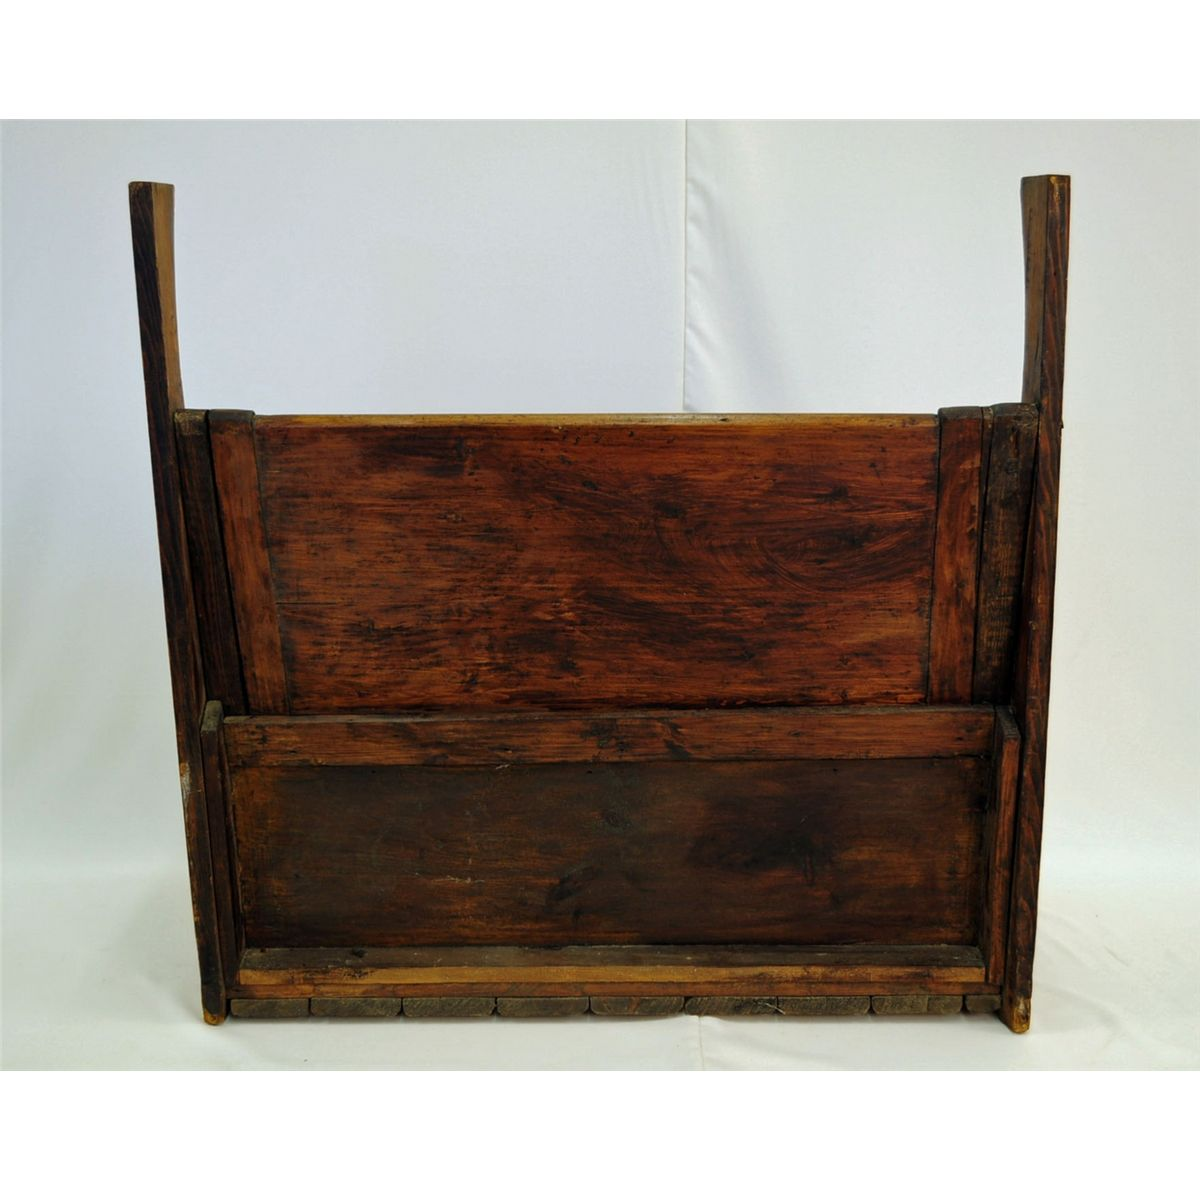 Early country pine bench with lift seat.